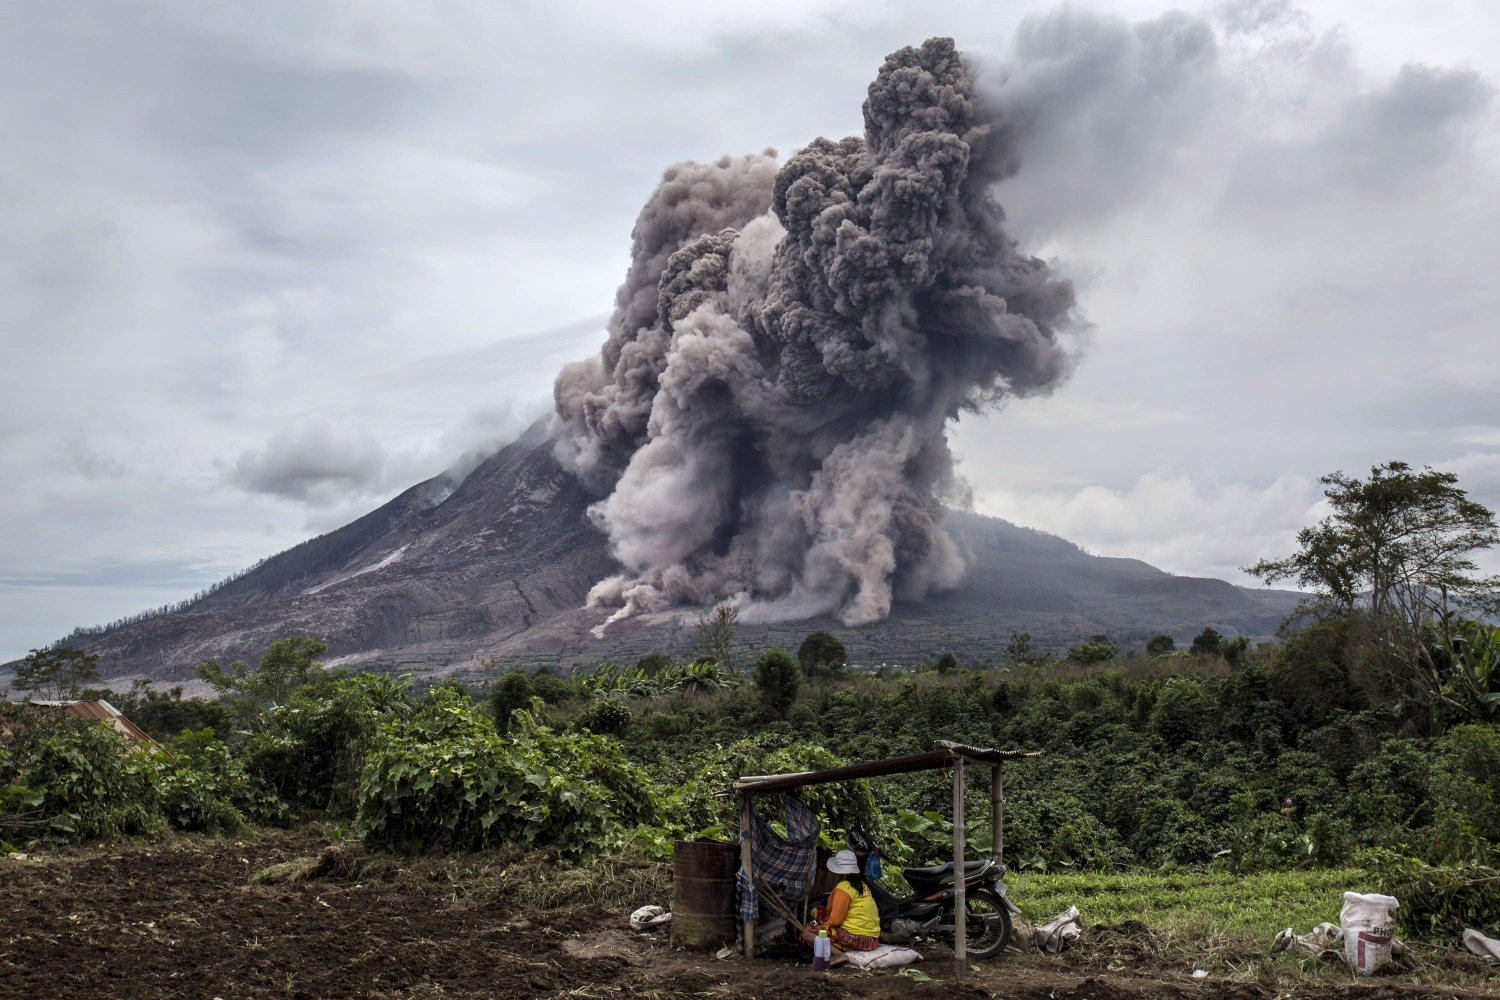 Indonesia's Mount Sinabung Spews Ash 3 Miles High | Science Times